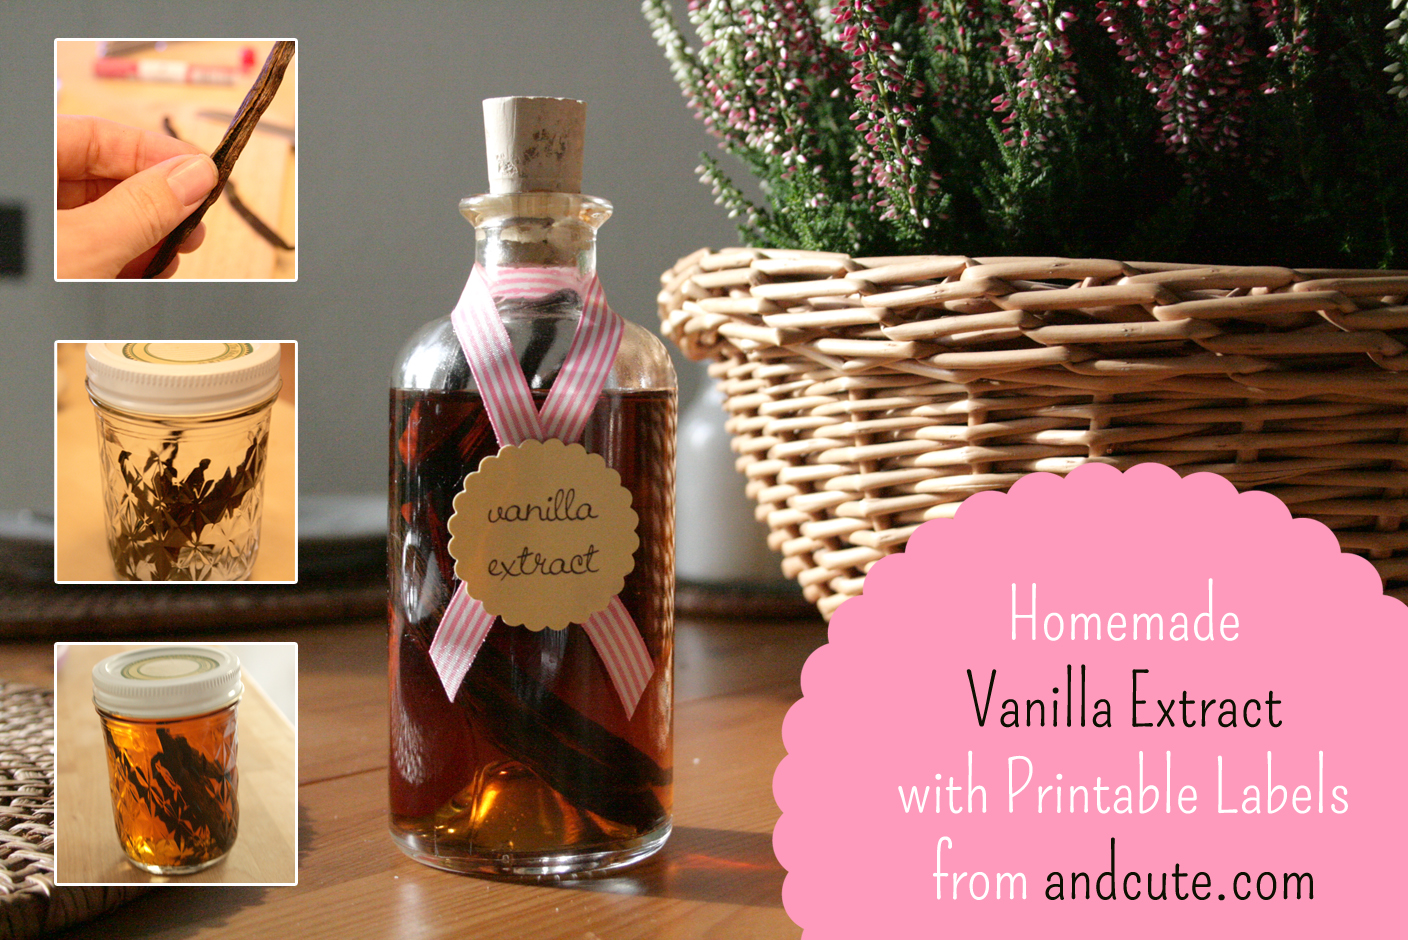 homemade vanilla extract with printable labels